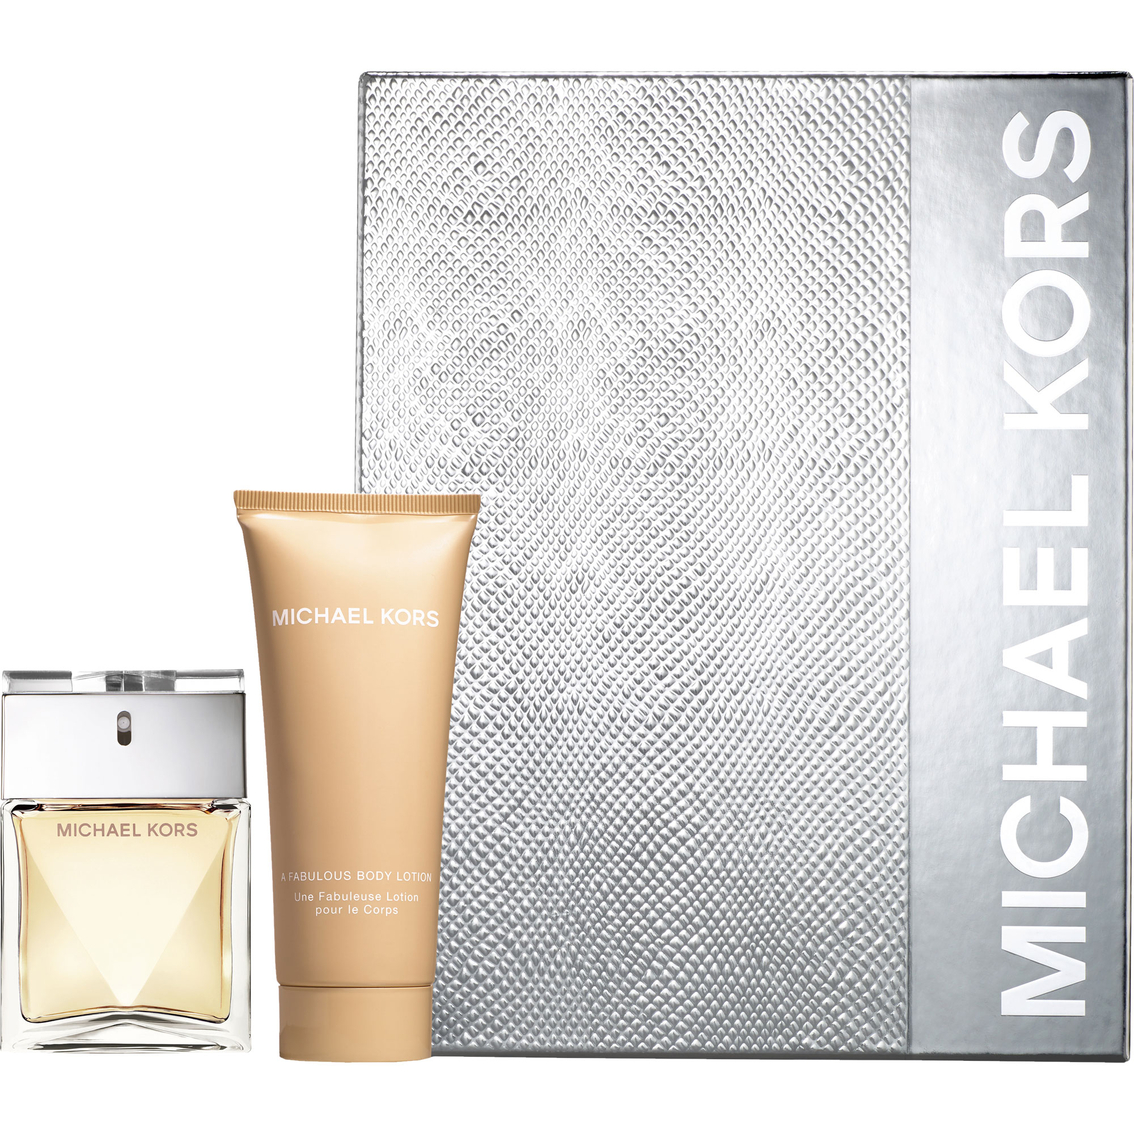 Michael Kors Fabulous 2 Pc. Gift Set | Gifts Sets For Her | Gifts ...